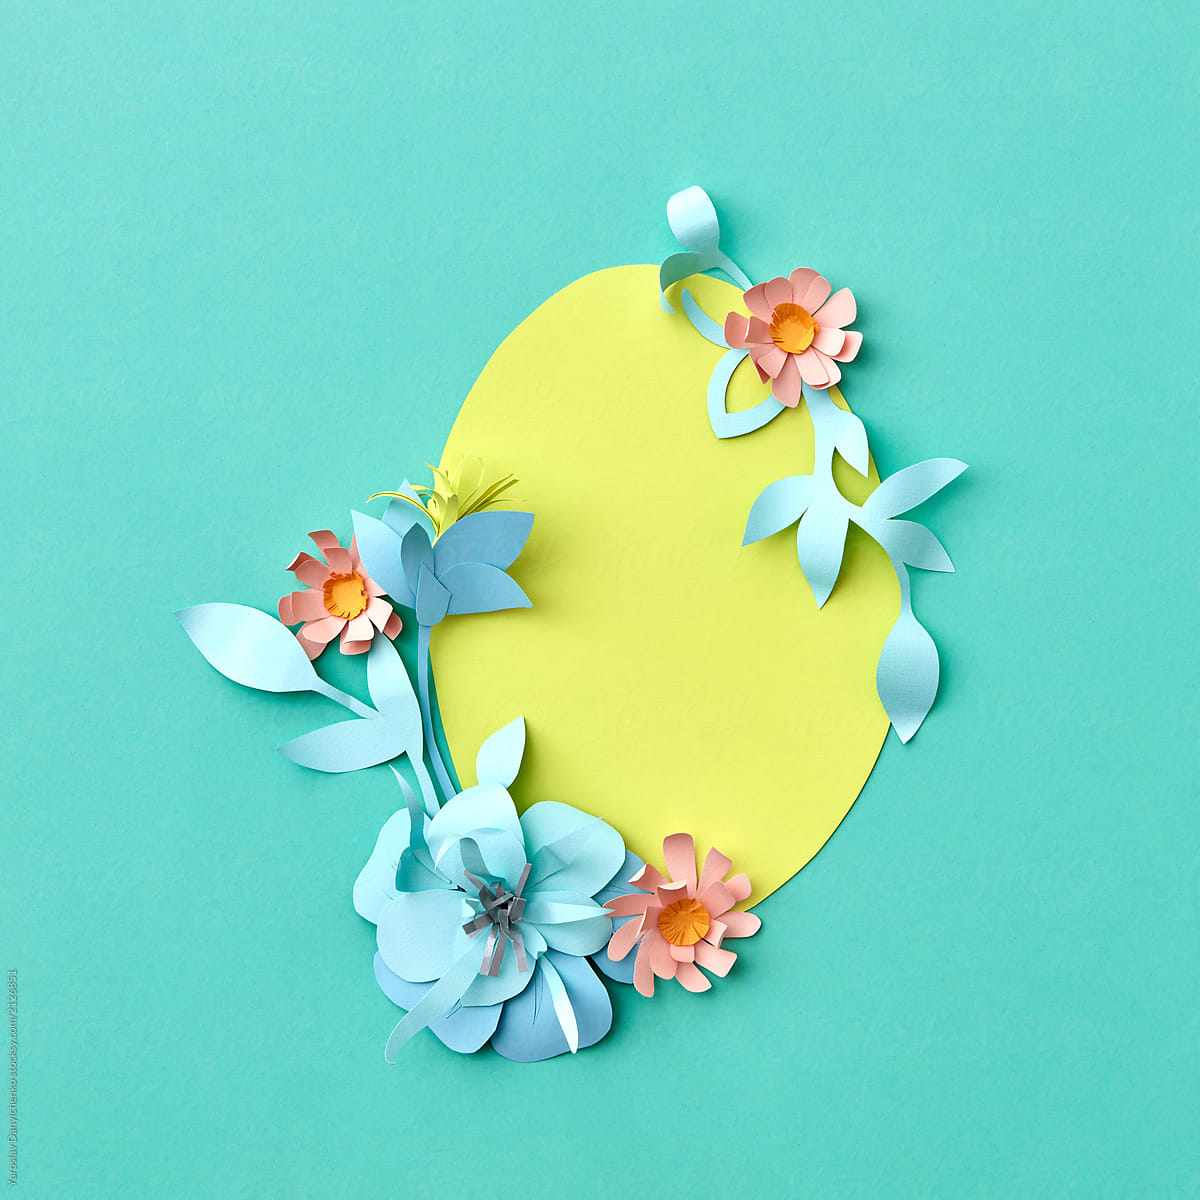 Handcraft Paper Flowers And Leaves Yellow Egg On A Green Backgr